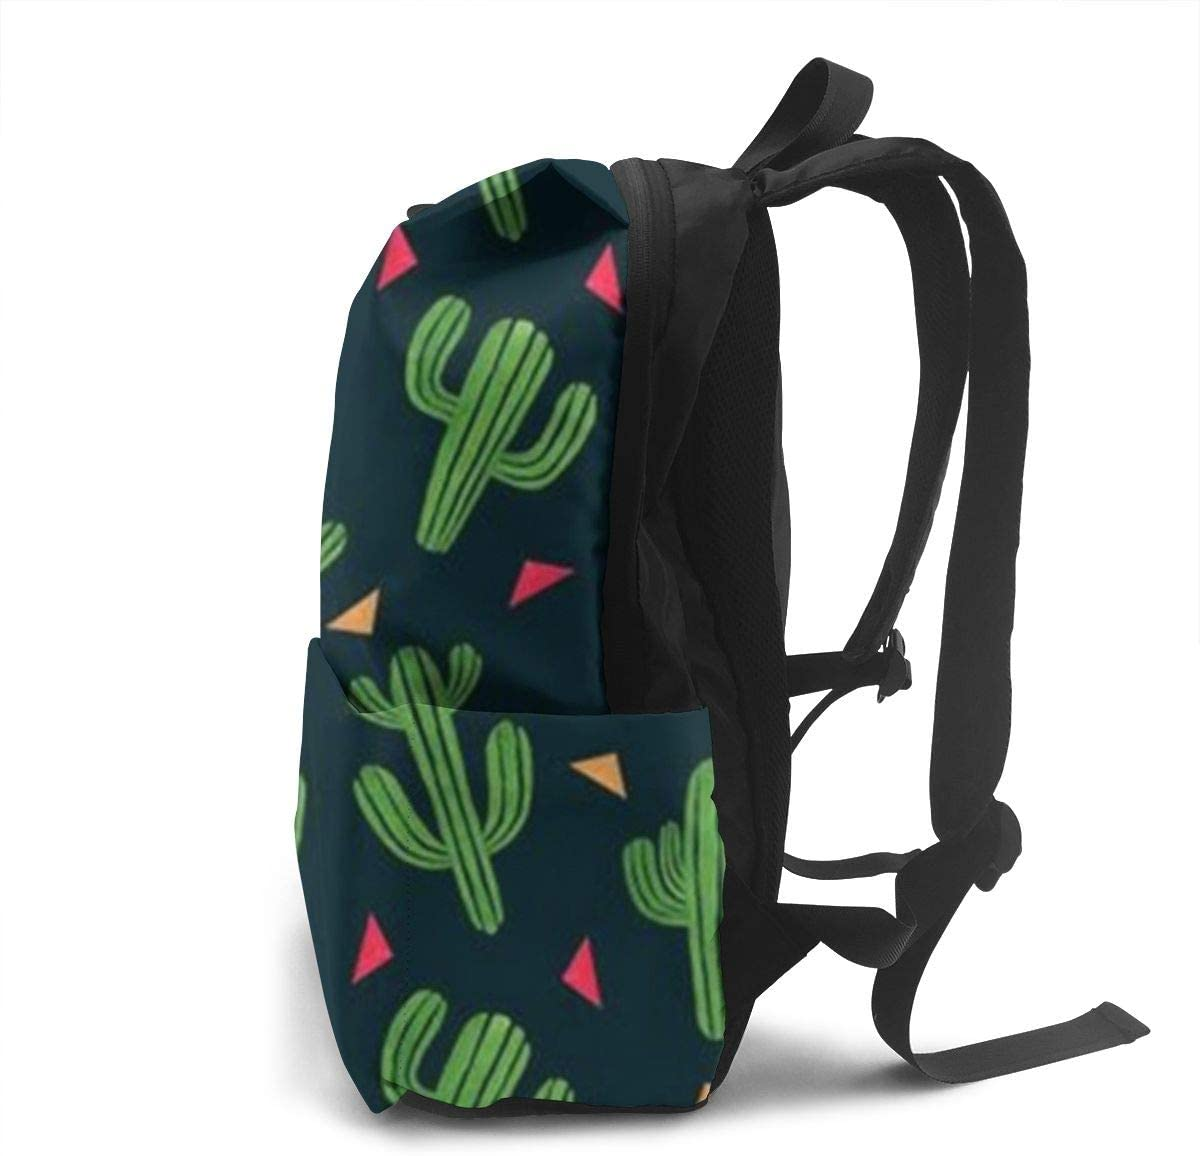 Cute Cactus Unisex Light and Durable Classic Travel School Backpack Fits 14 Inch Laptop